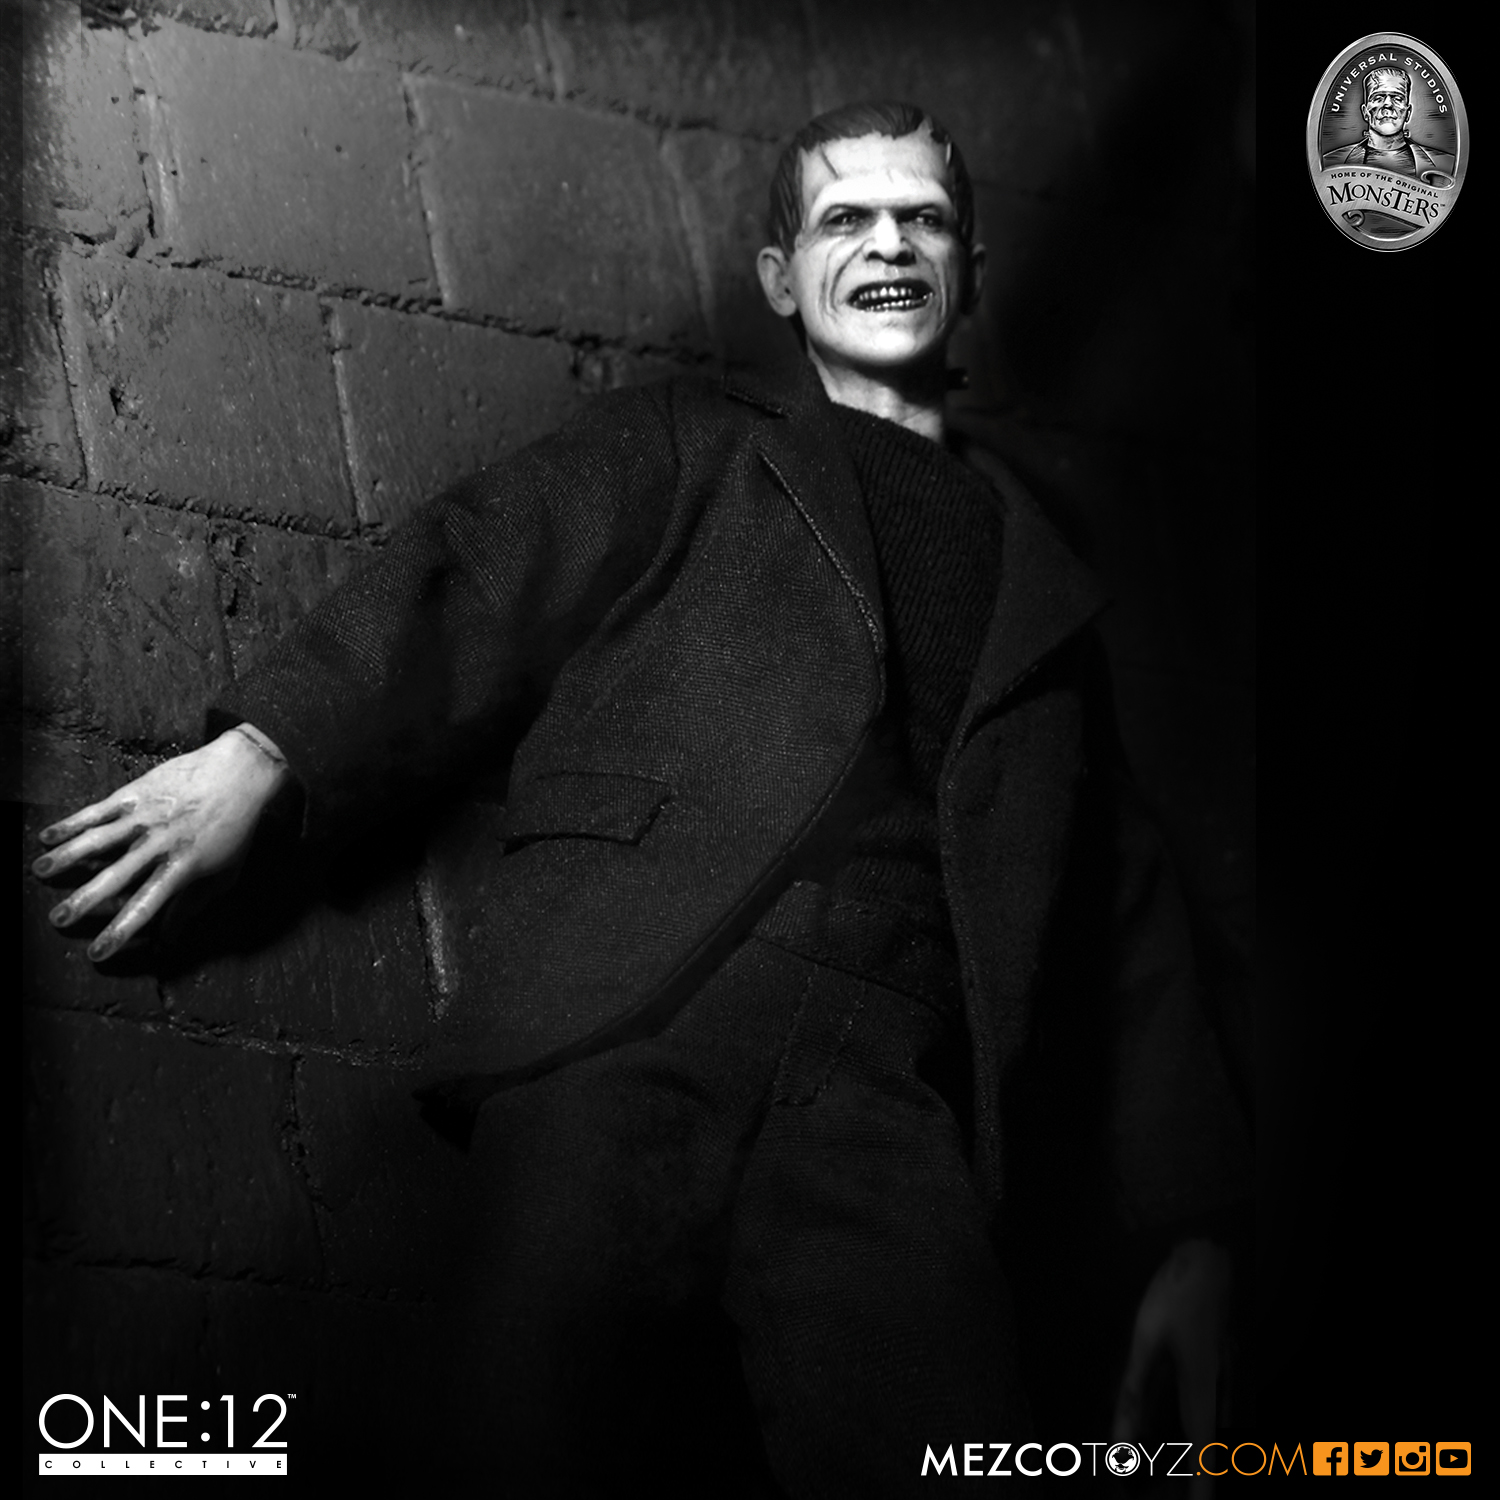 One:12 Collective Frankenstein by Marc Witz